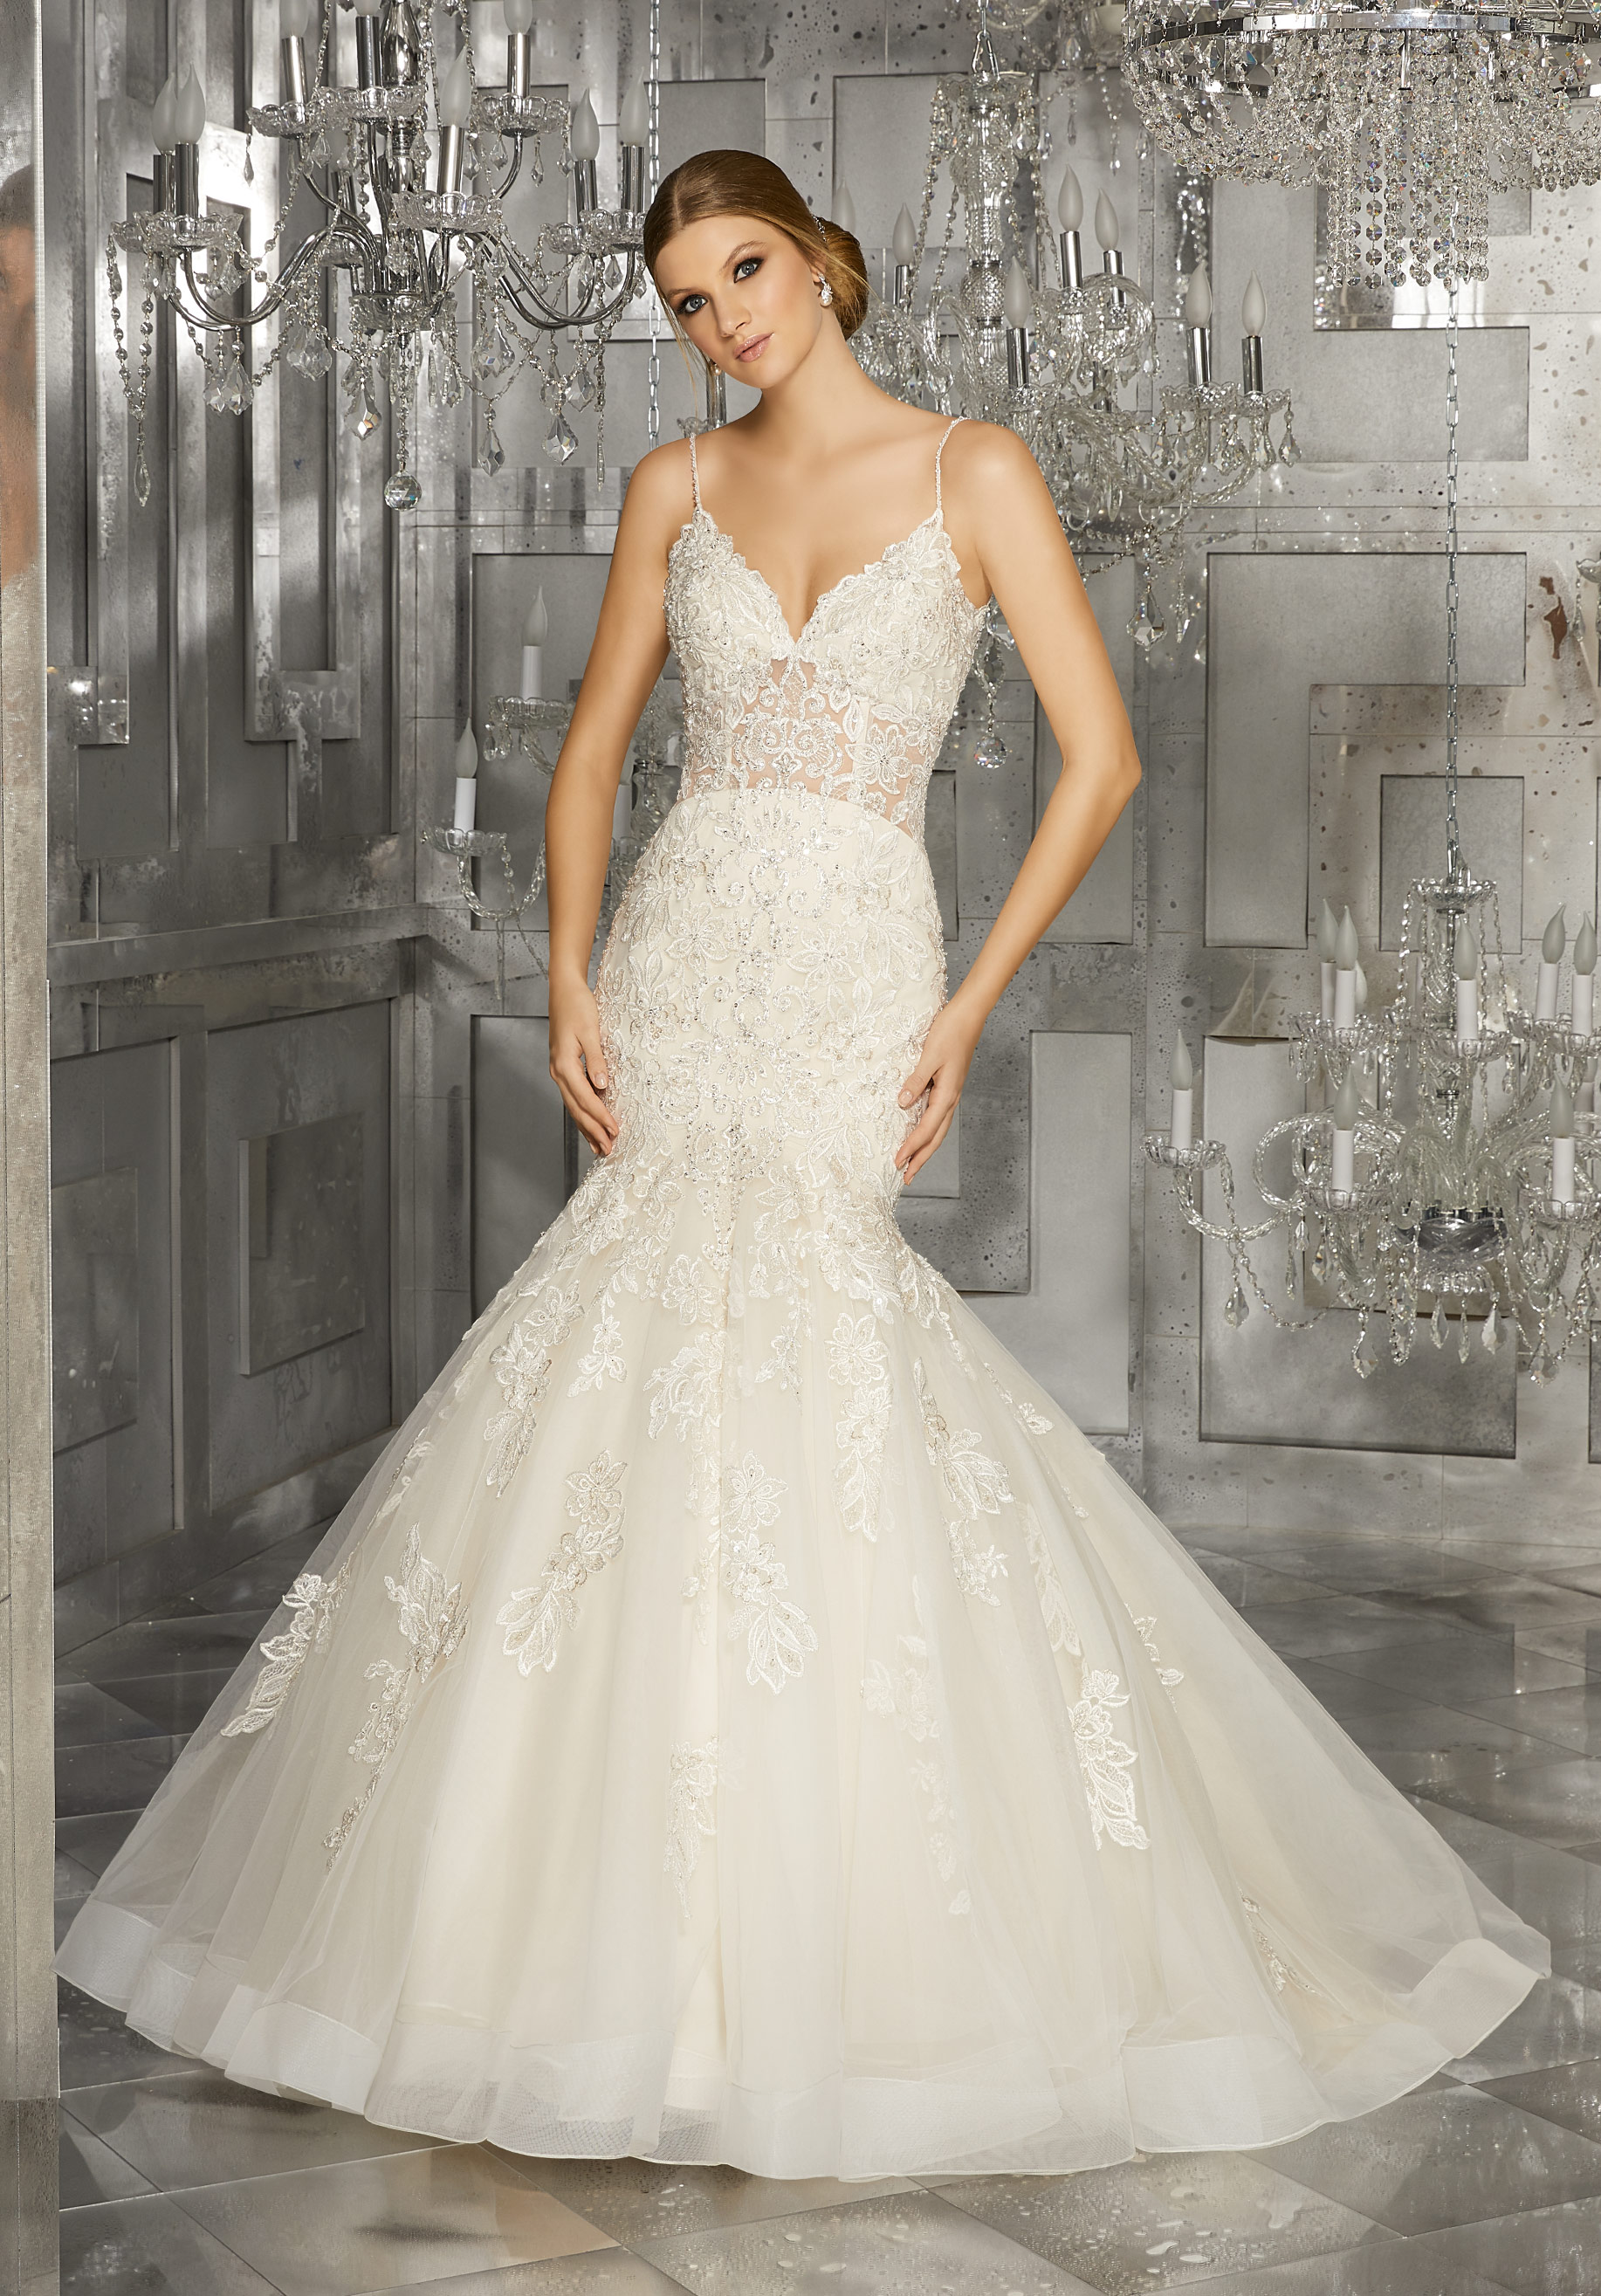 straight wedding dresses photo - 1